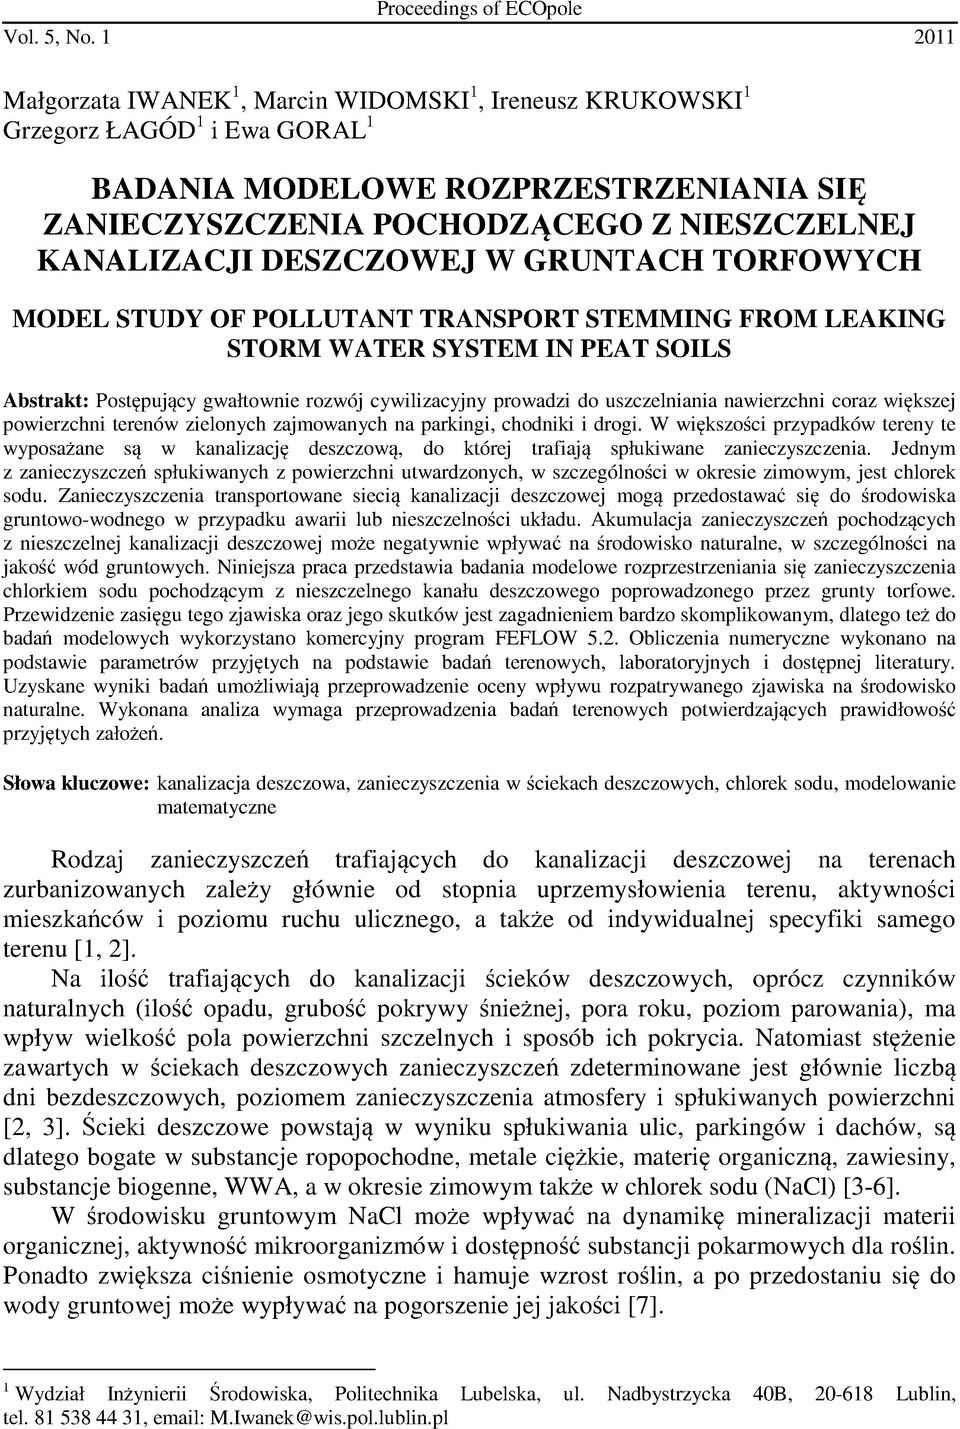 DESZCZOWEJ W GRUNTACH TORFOWYCH MODEL STUDY OF POLLUTANT TRANSPORT STEMMING FROM LEAKING STORM WATER SYSTEM IN PEAT SOILS Abstrakt: Postępujący gwałtownie rozwój cywilizacyjny prowadzi do